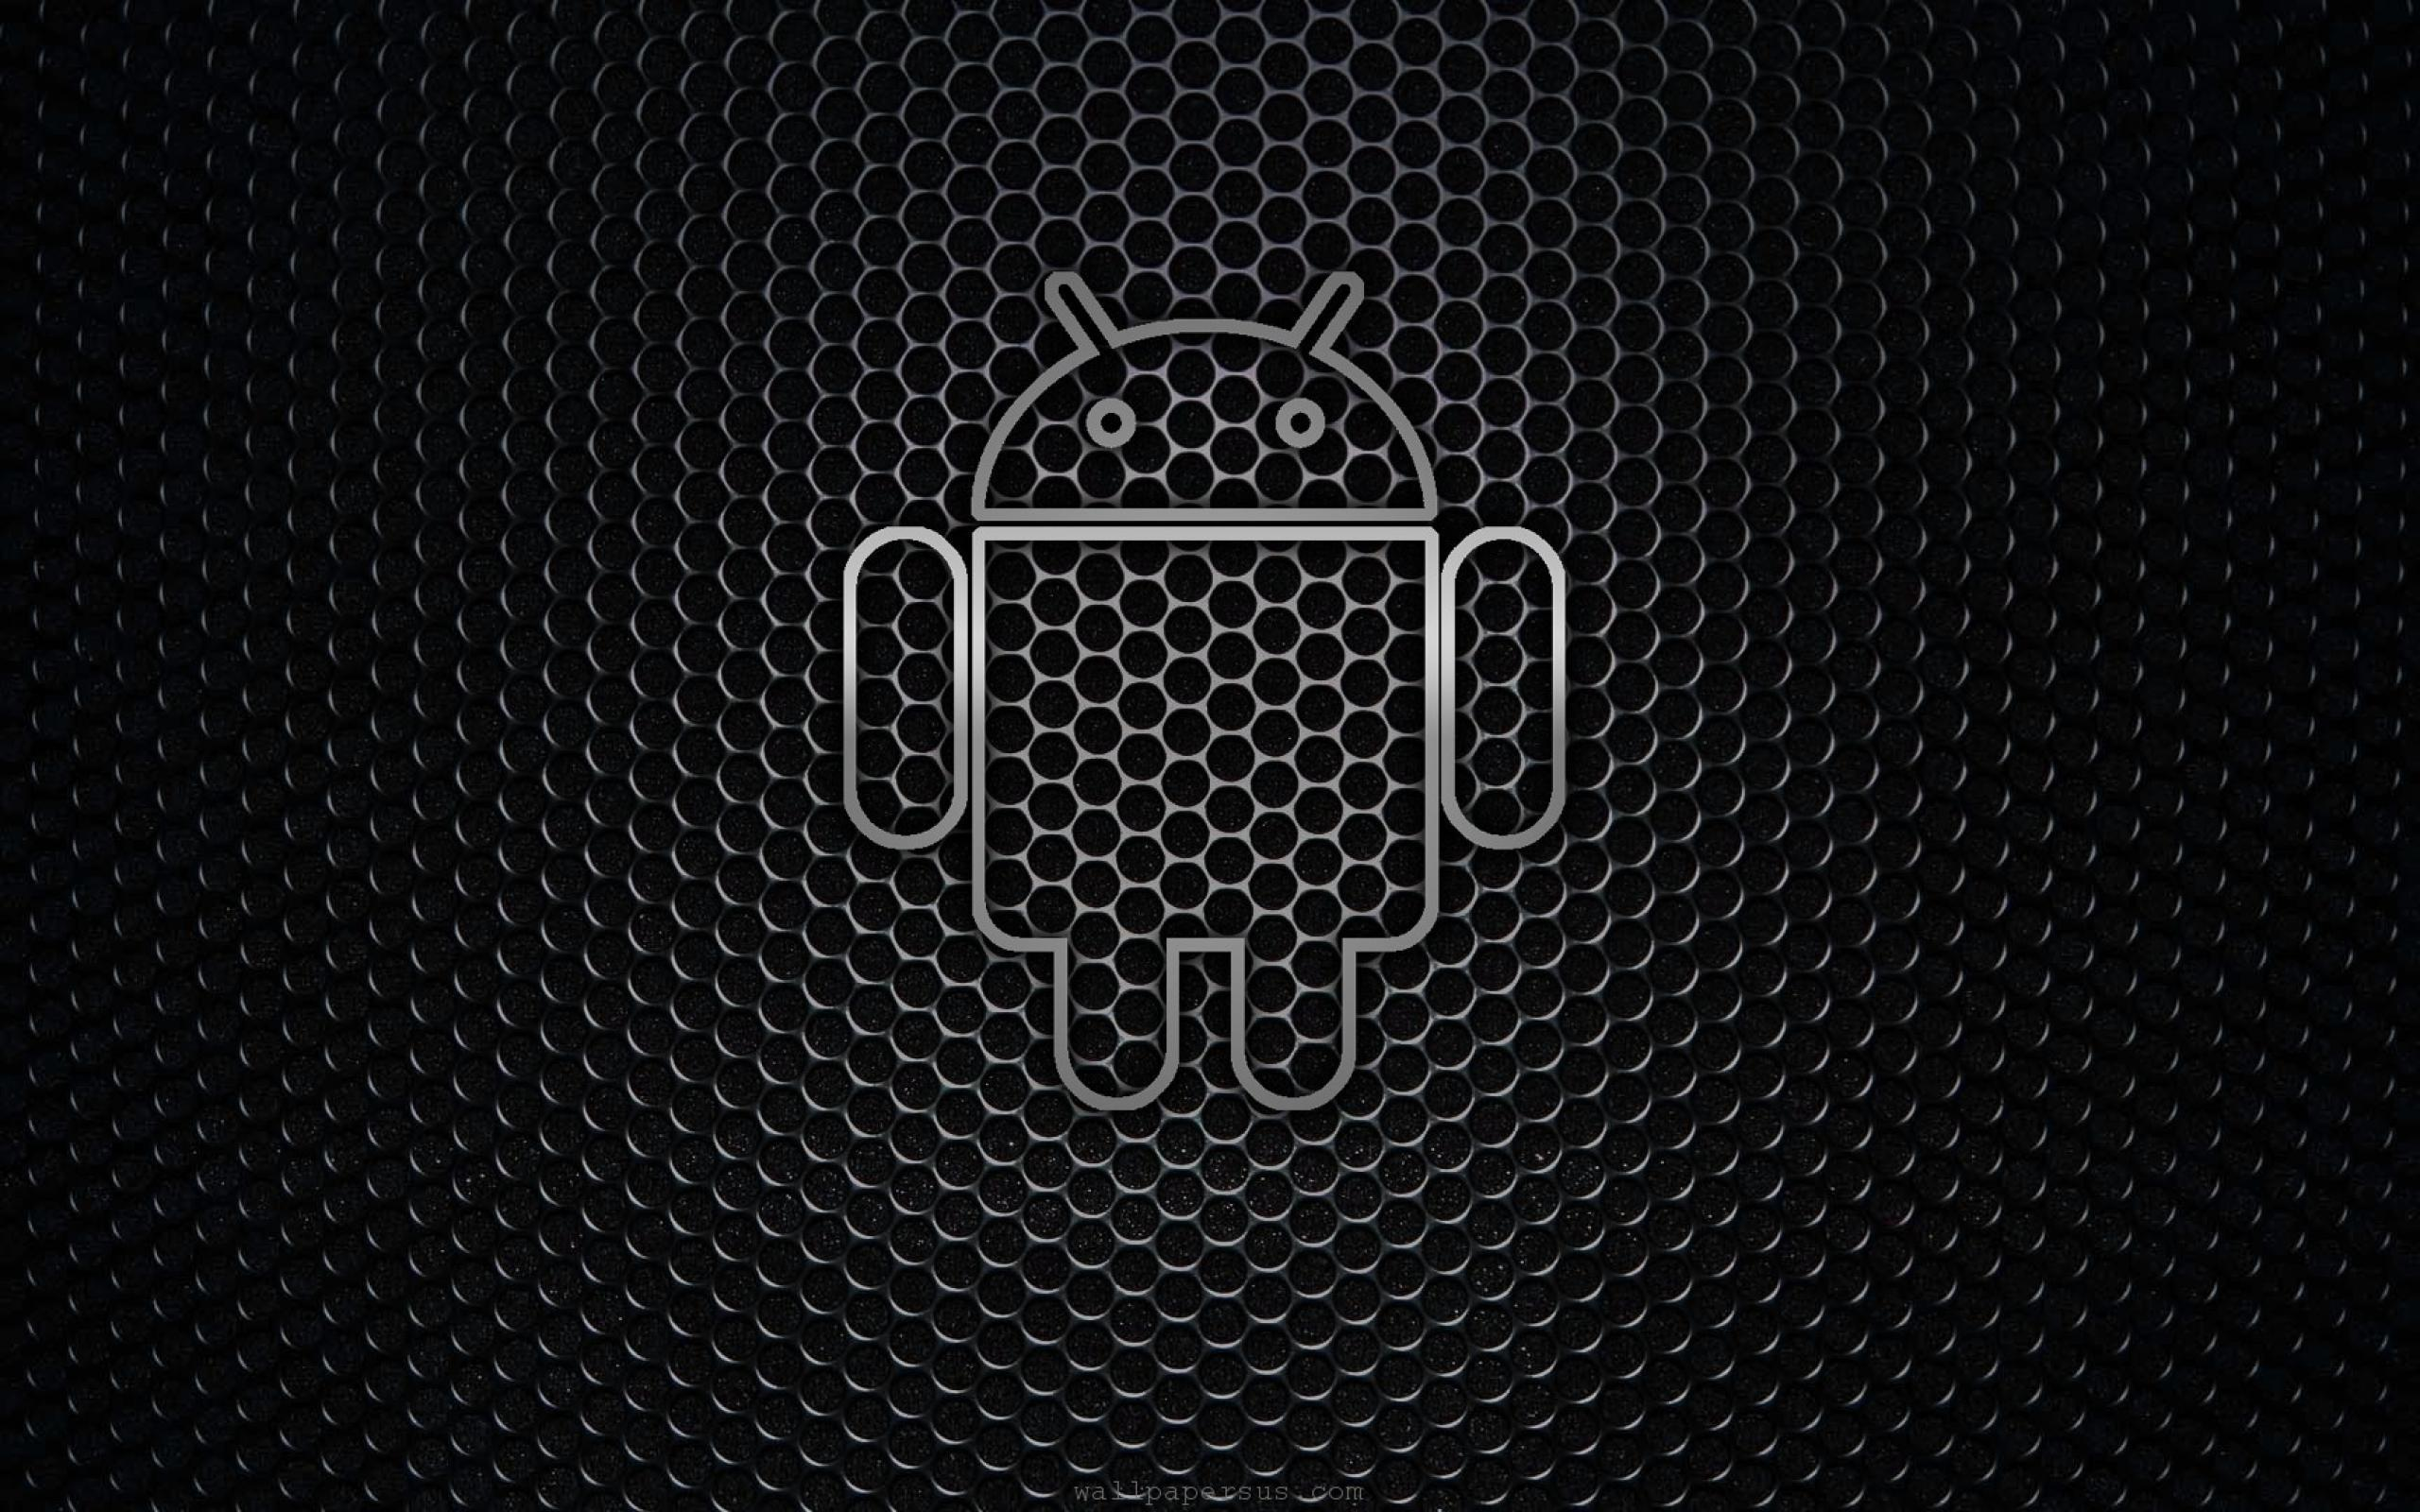 most downloaded android logo wallpapers full hd wallpaper search